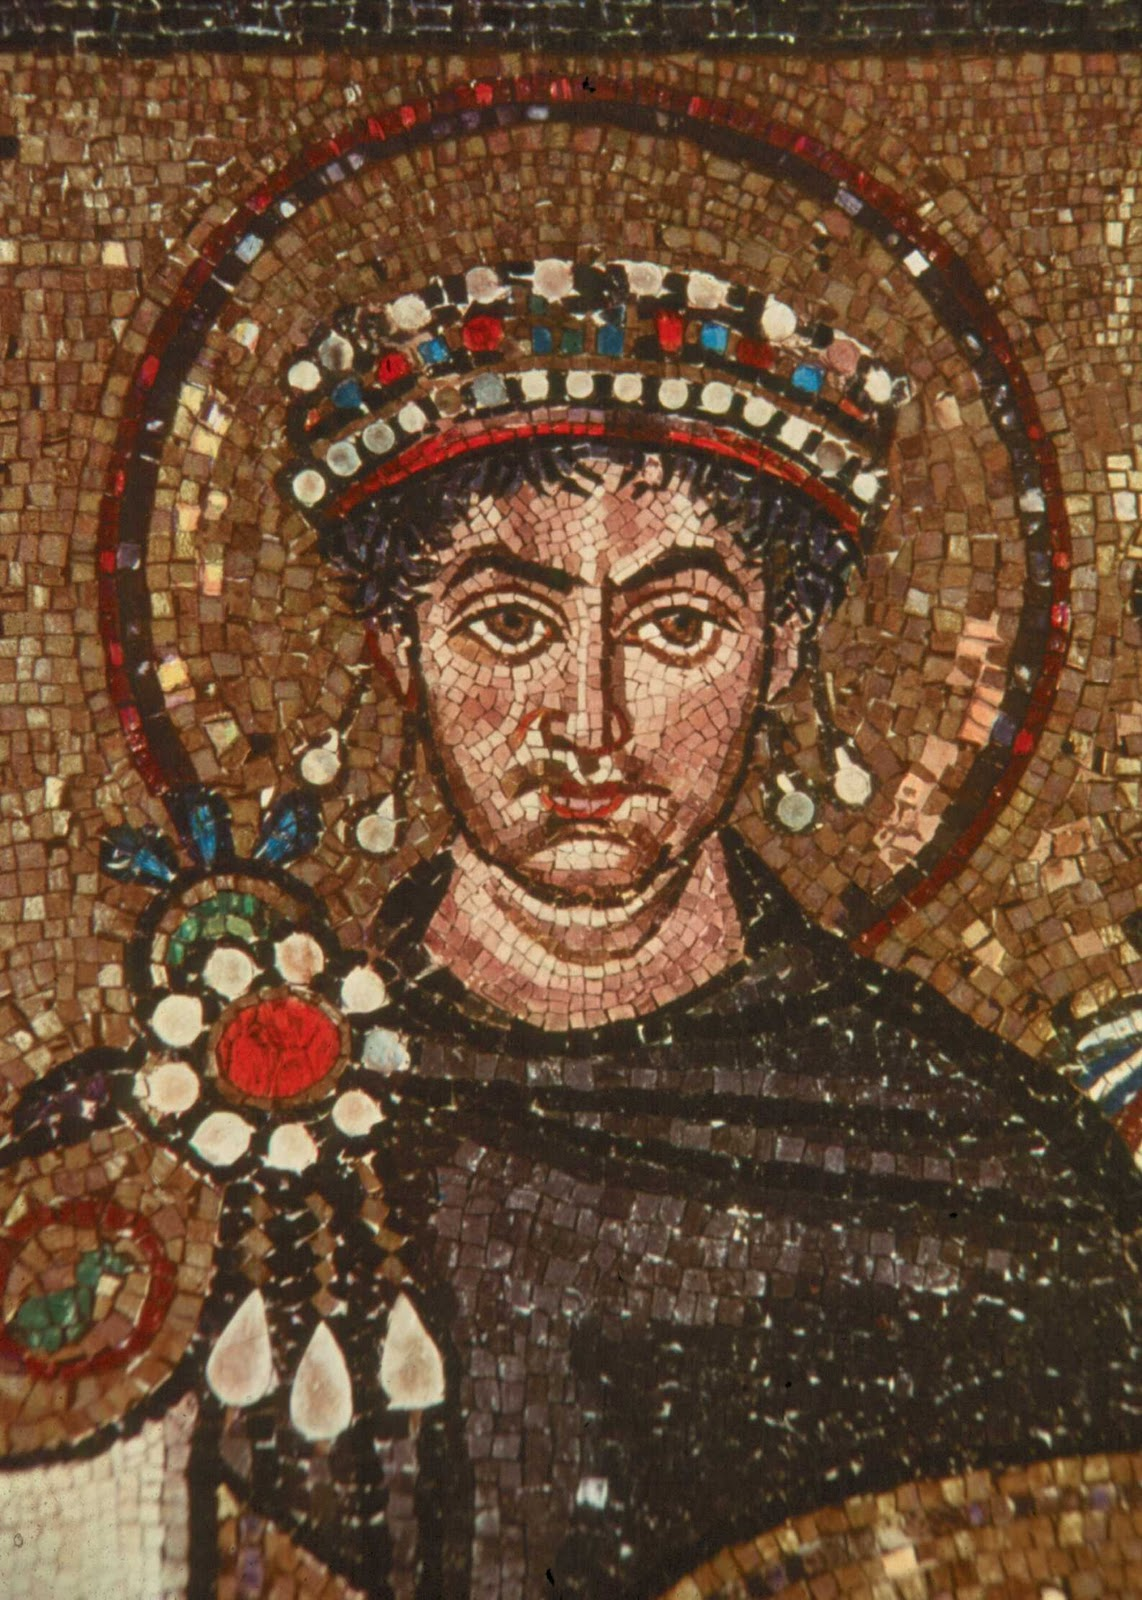 the creation of byzantine empire Although the byzantine empire had a multi-ethnic character during most of its  history and preserved romano-hellenistic traditions, it became identified with its .